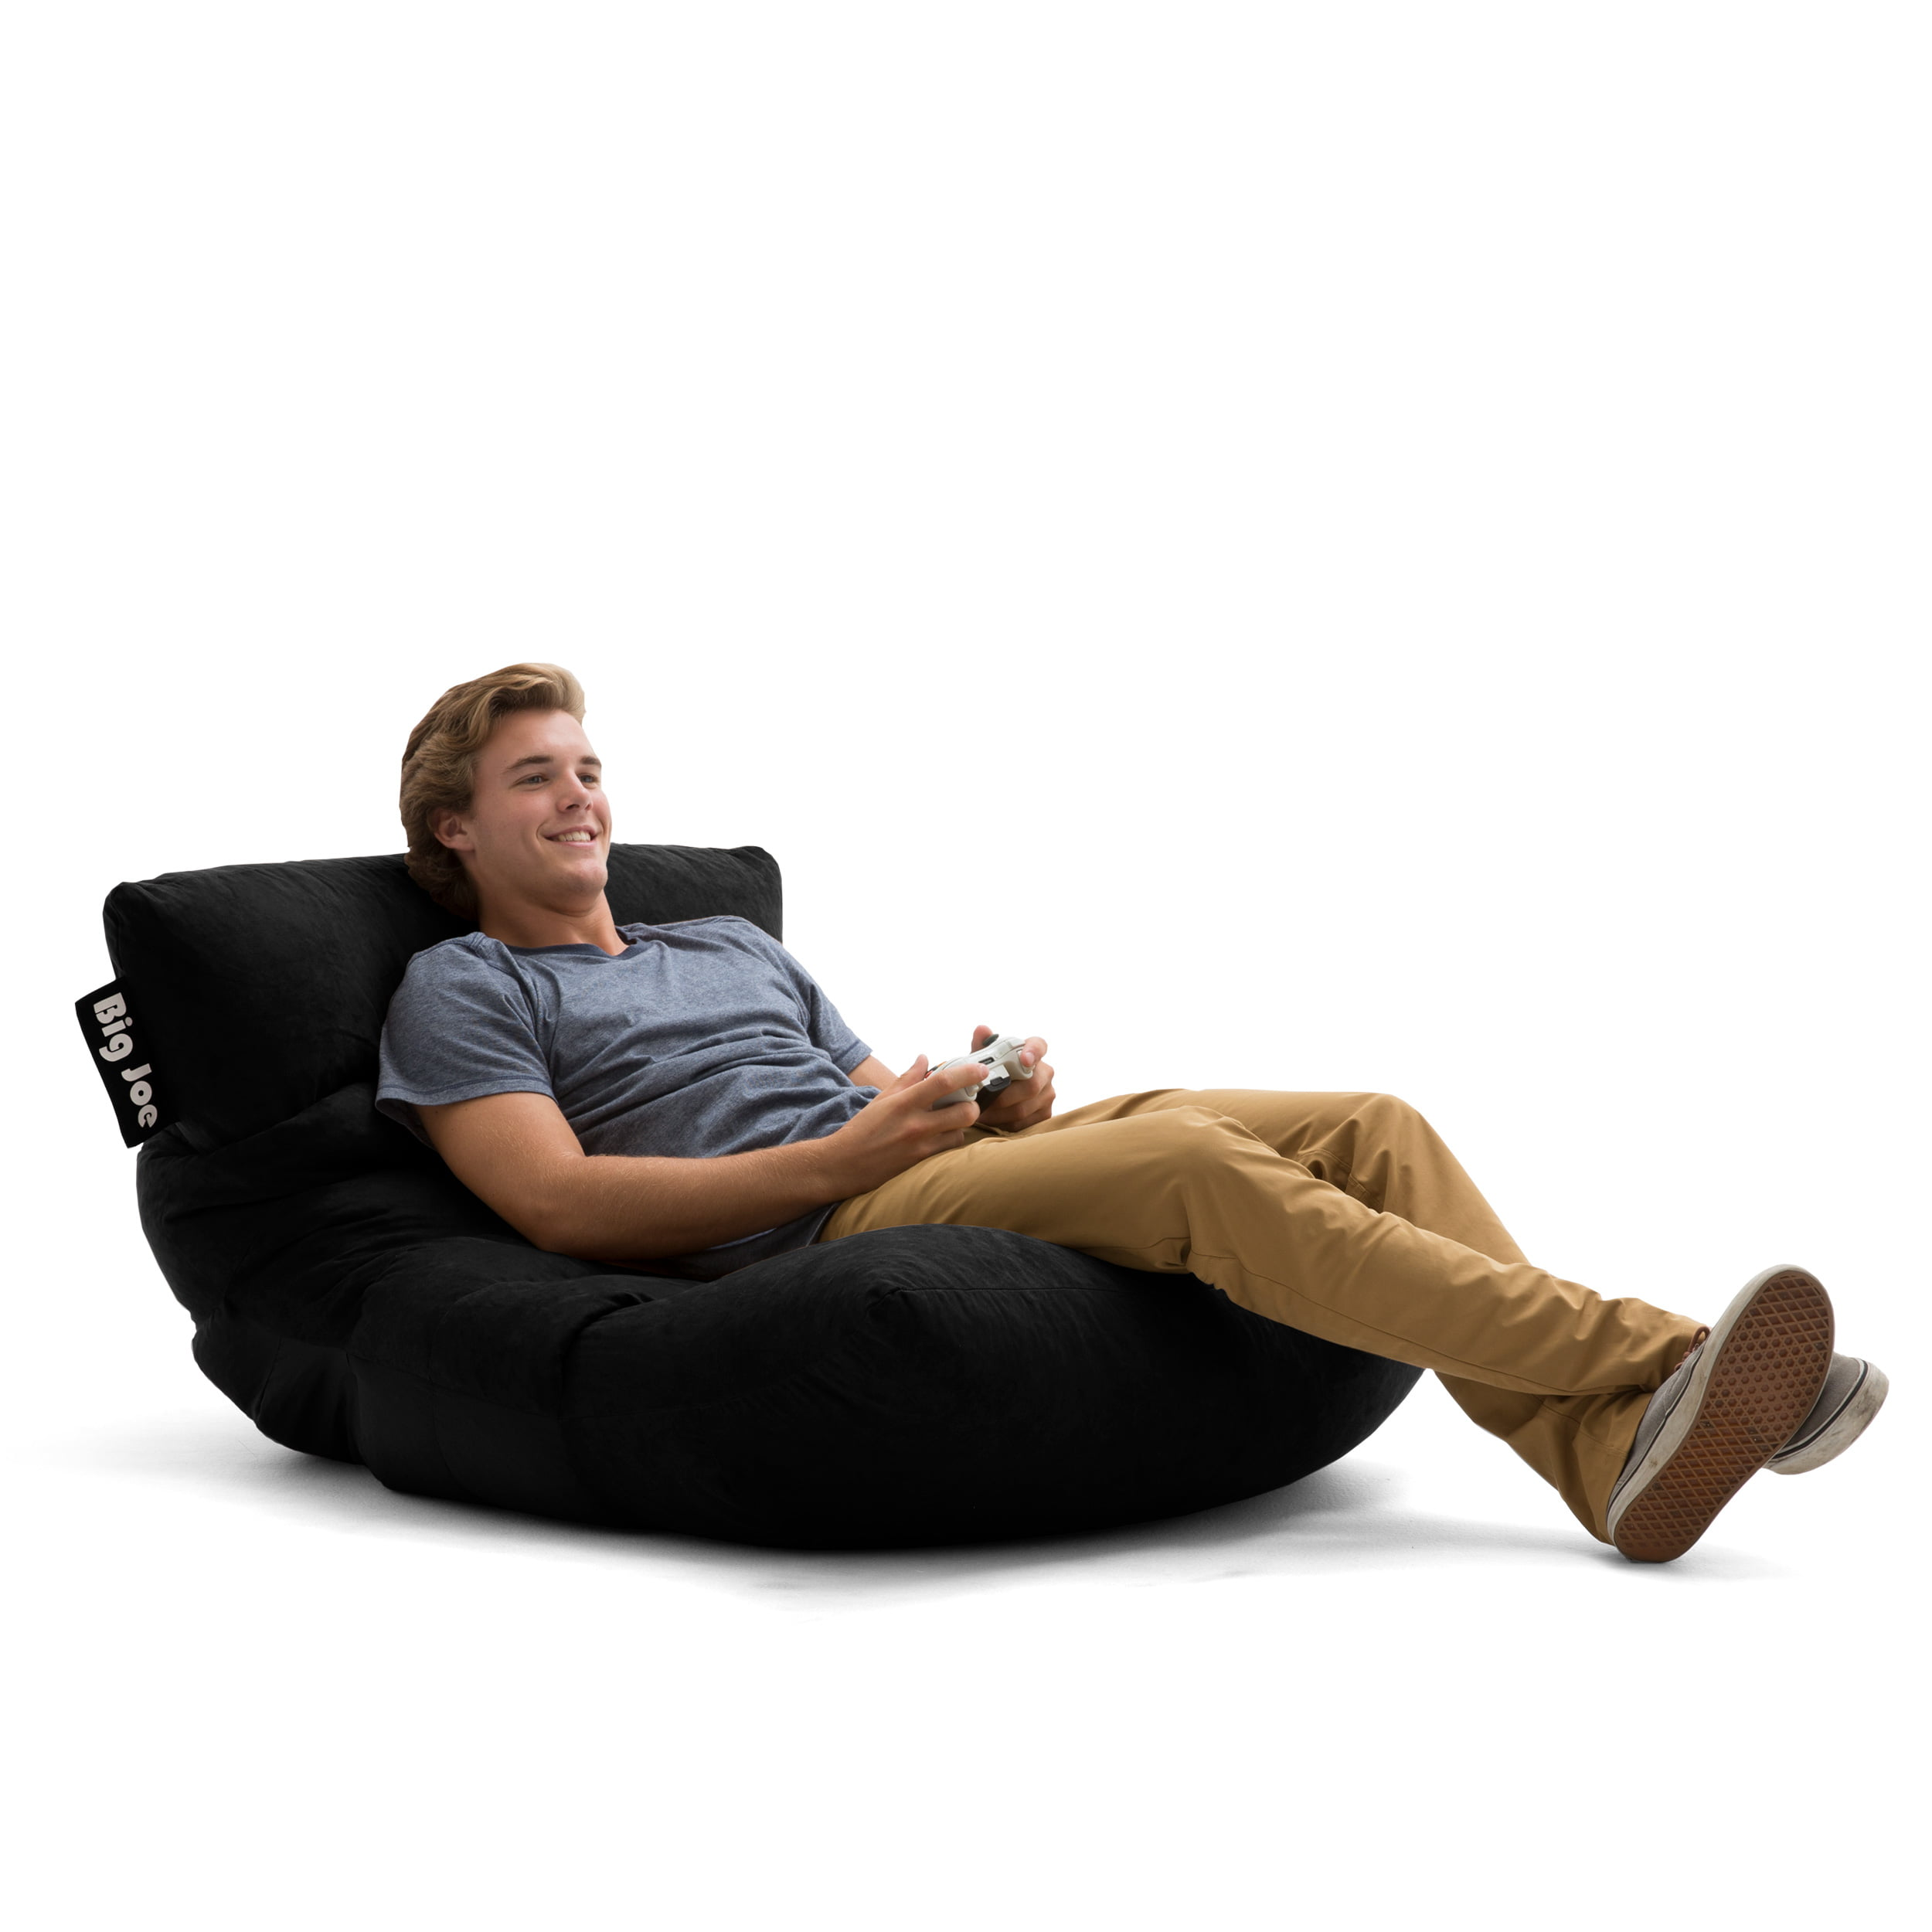 Surprising Big Joe Roma Floor Bean Bag Chair Multiple Colors Fabrics Inzonedesignstudio Interior Chair Design Inzonedesignstudiocom